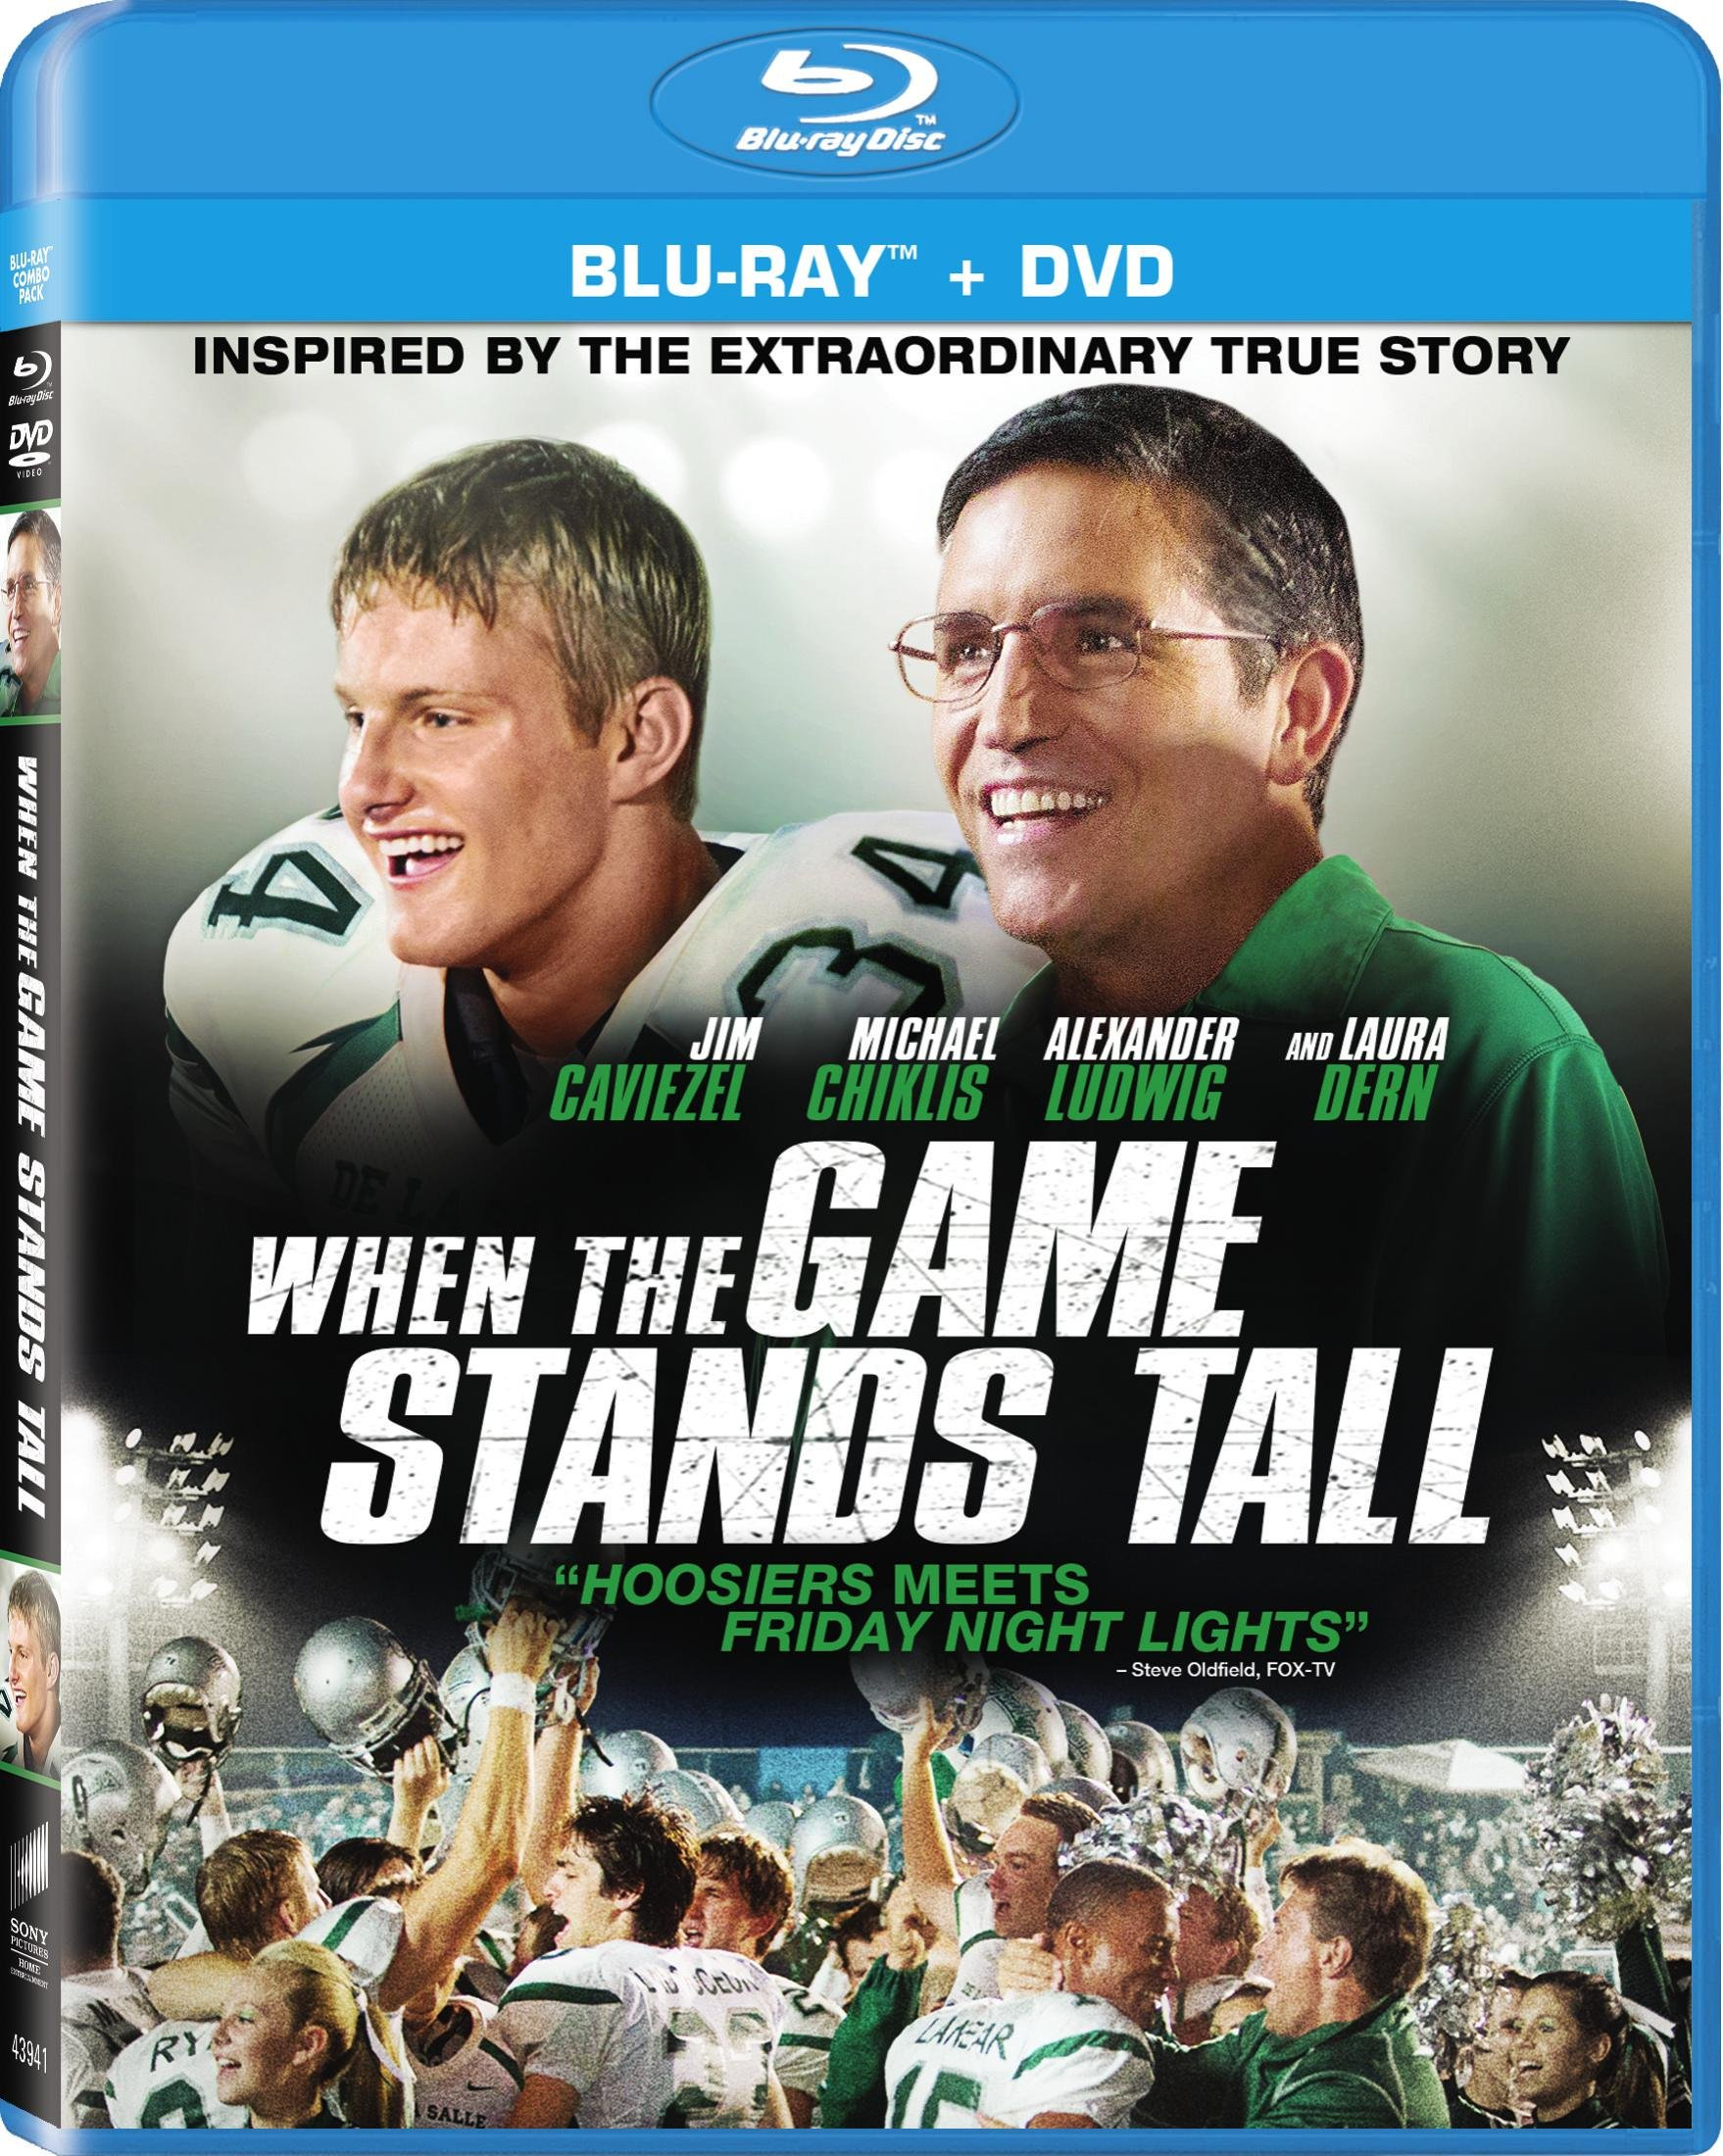 When the Game Stands Tall - Wikipedia